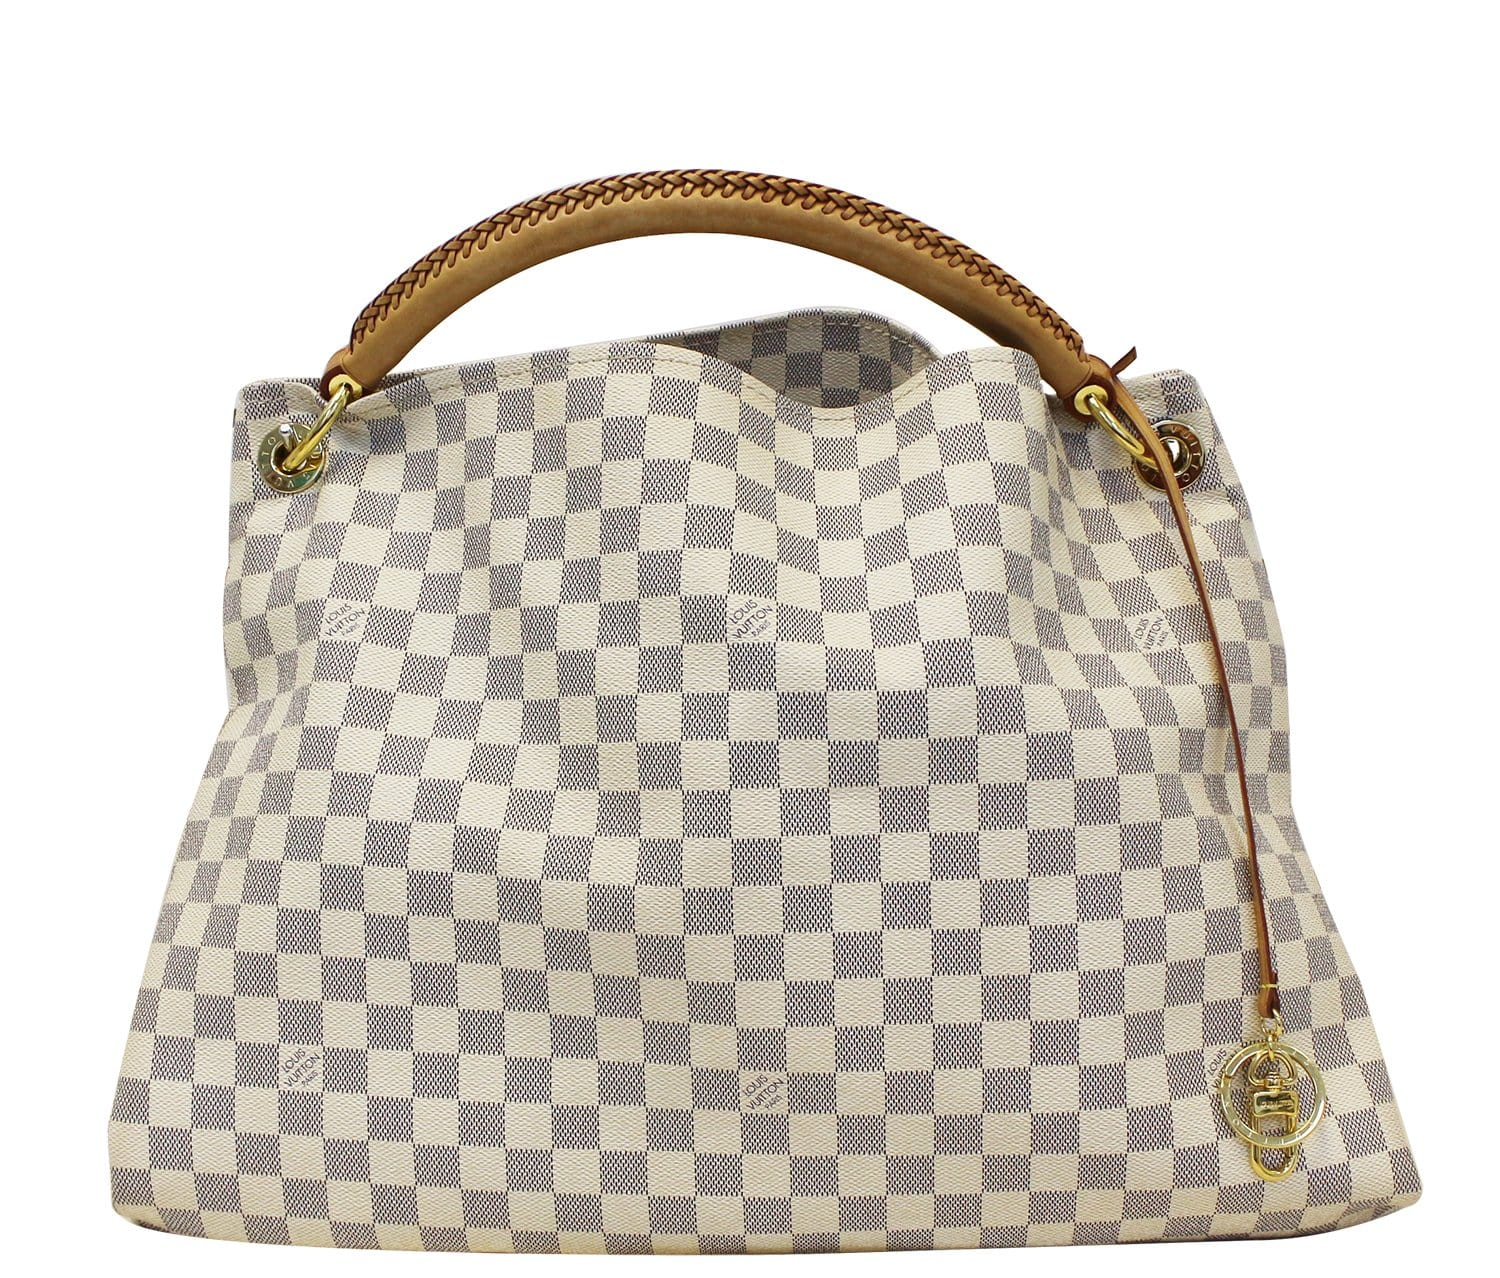 6d334363af7f LOUIS VUITTON Damier Azur Artsy GM Shoulder Bag Limited